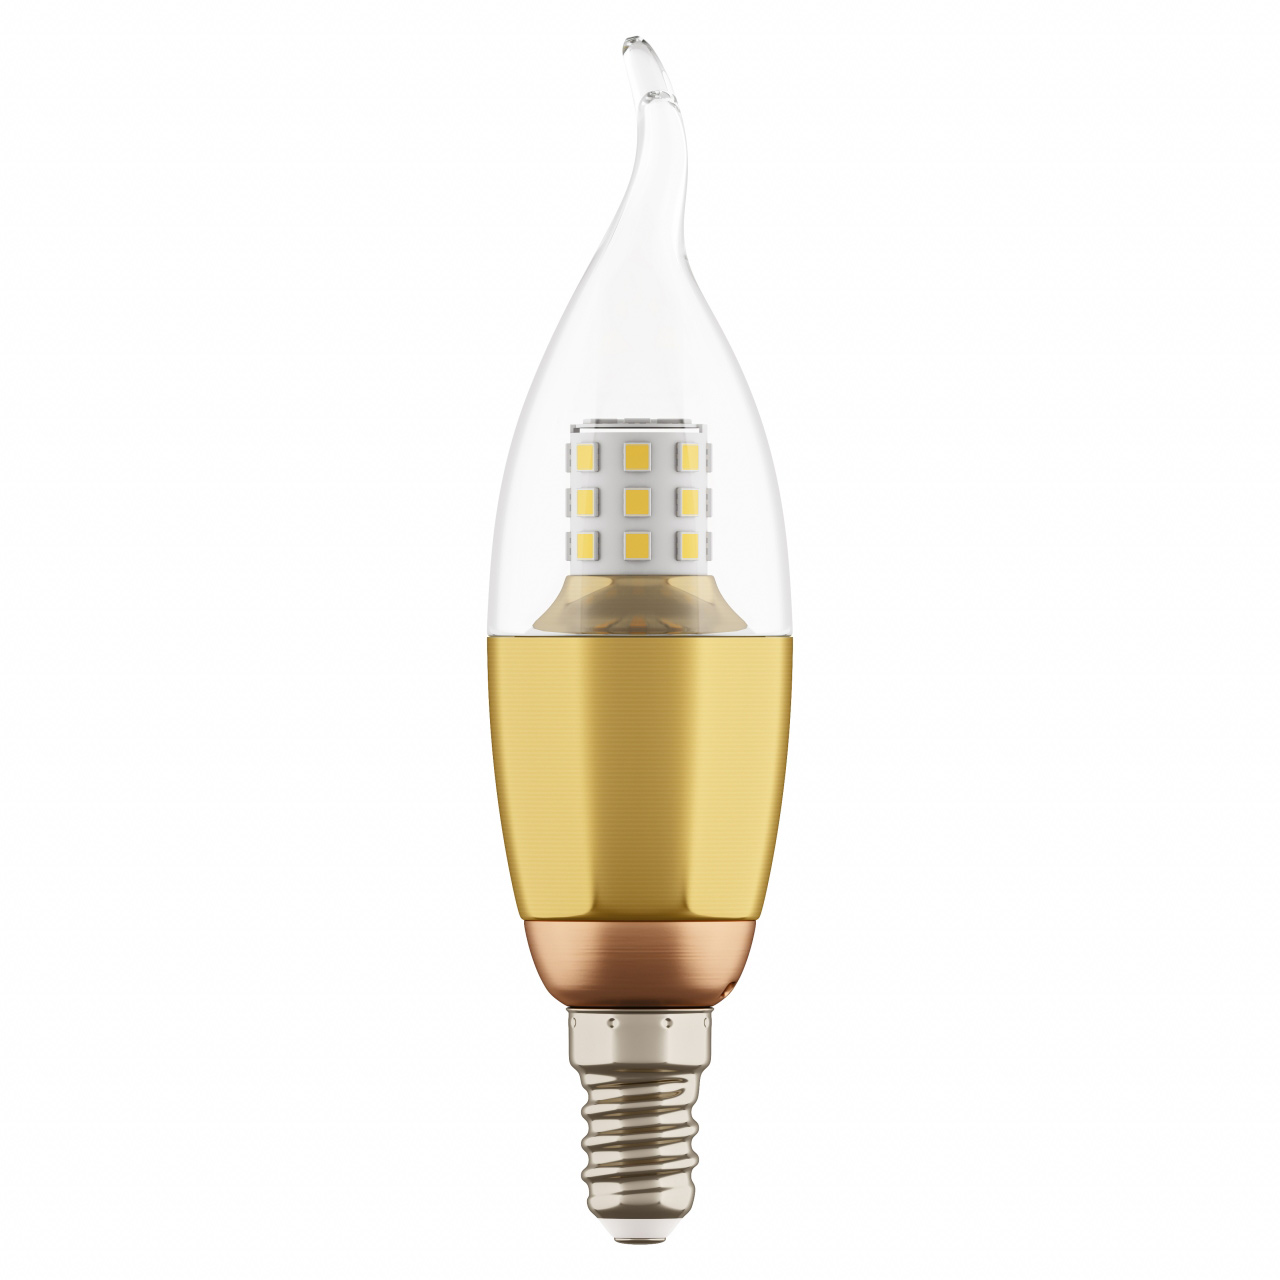 Лампа LED 220V CA35 E14 7W=70W 460LM 60G CL/GD 3000K 20000H Lightstar 940622